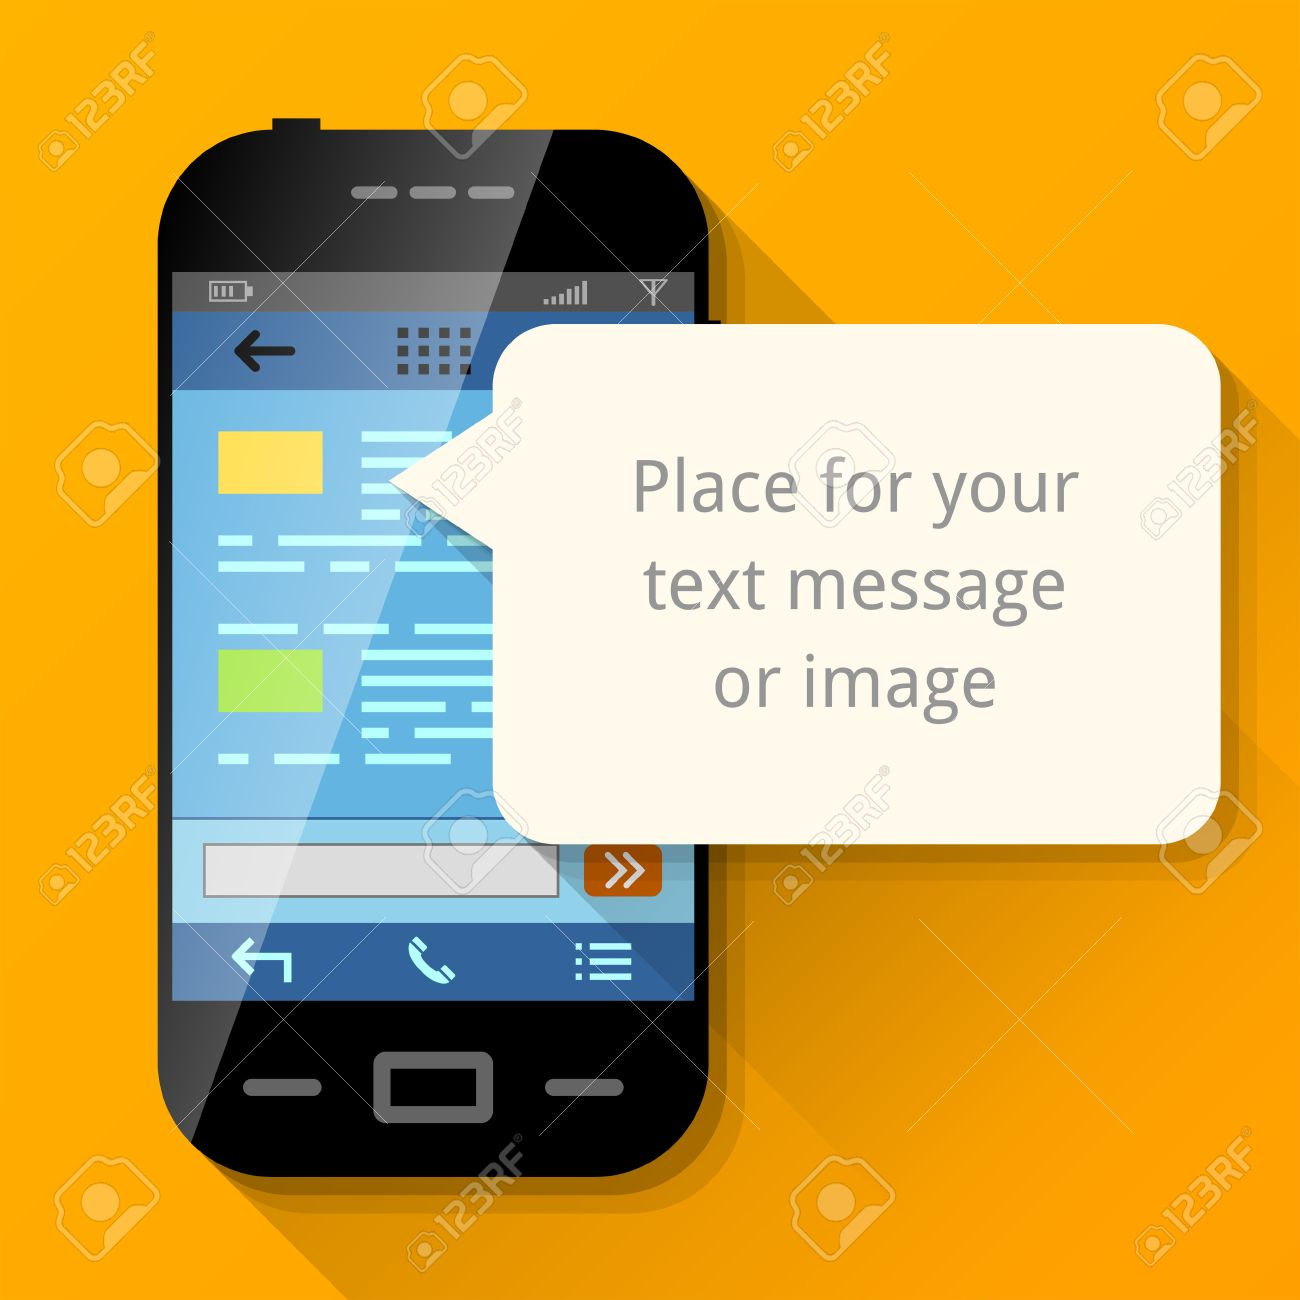 smartphone with blank message bubble dialog box pop up over screen of phone qualitative